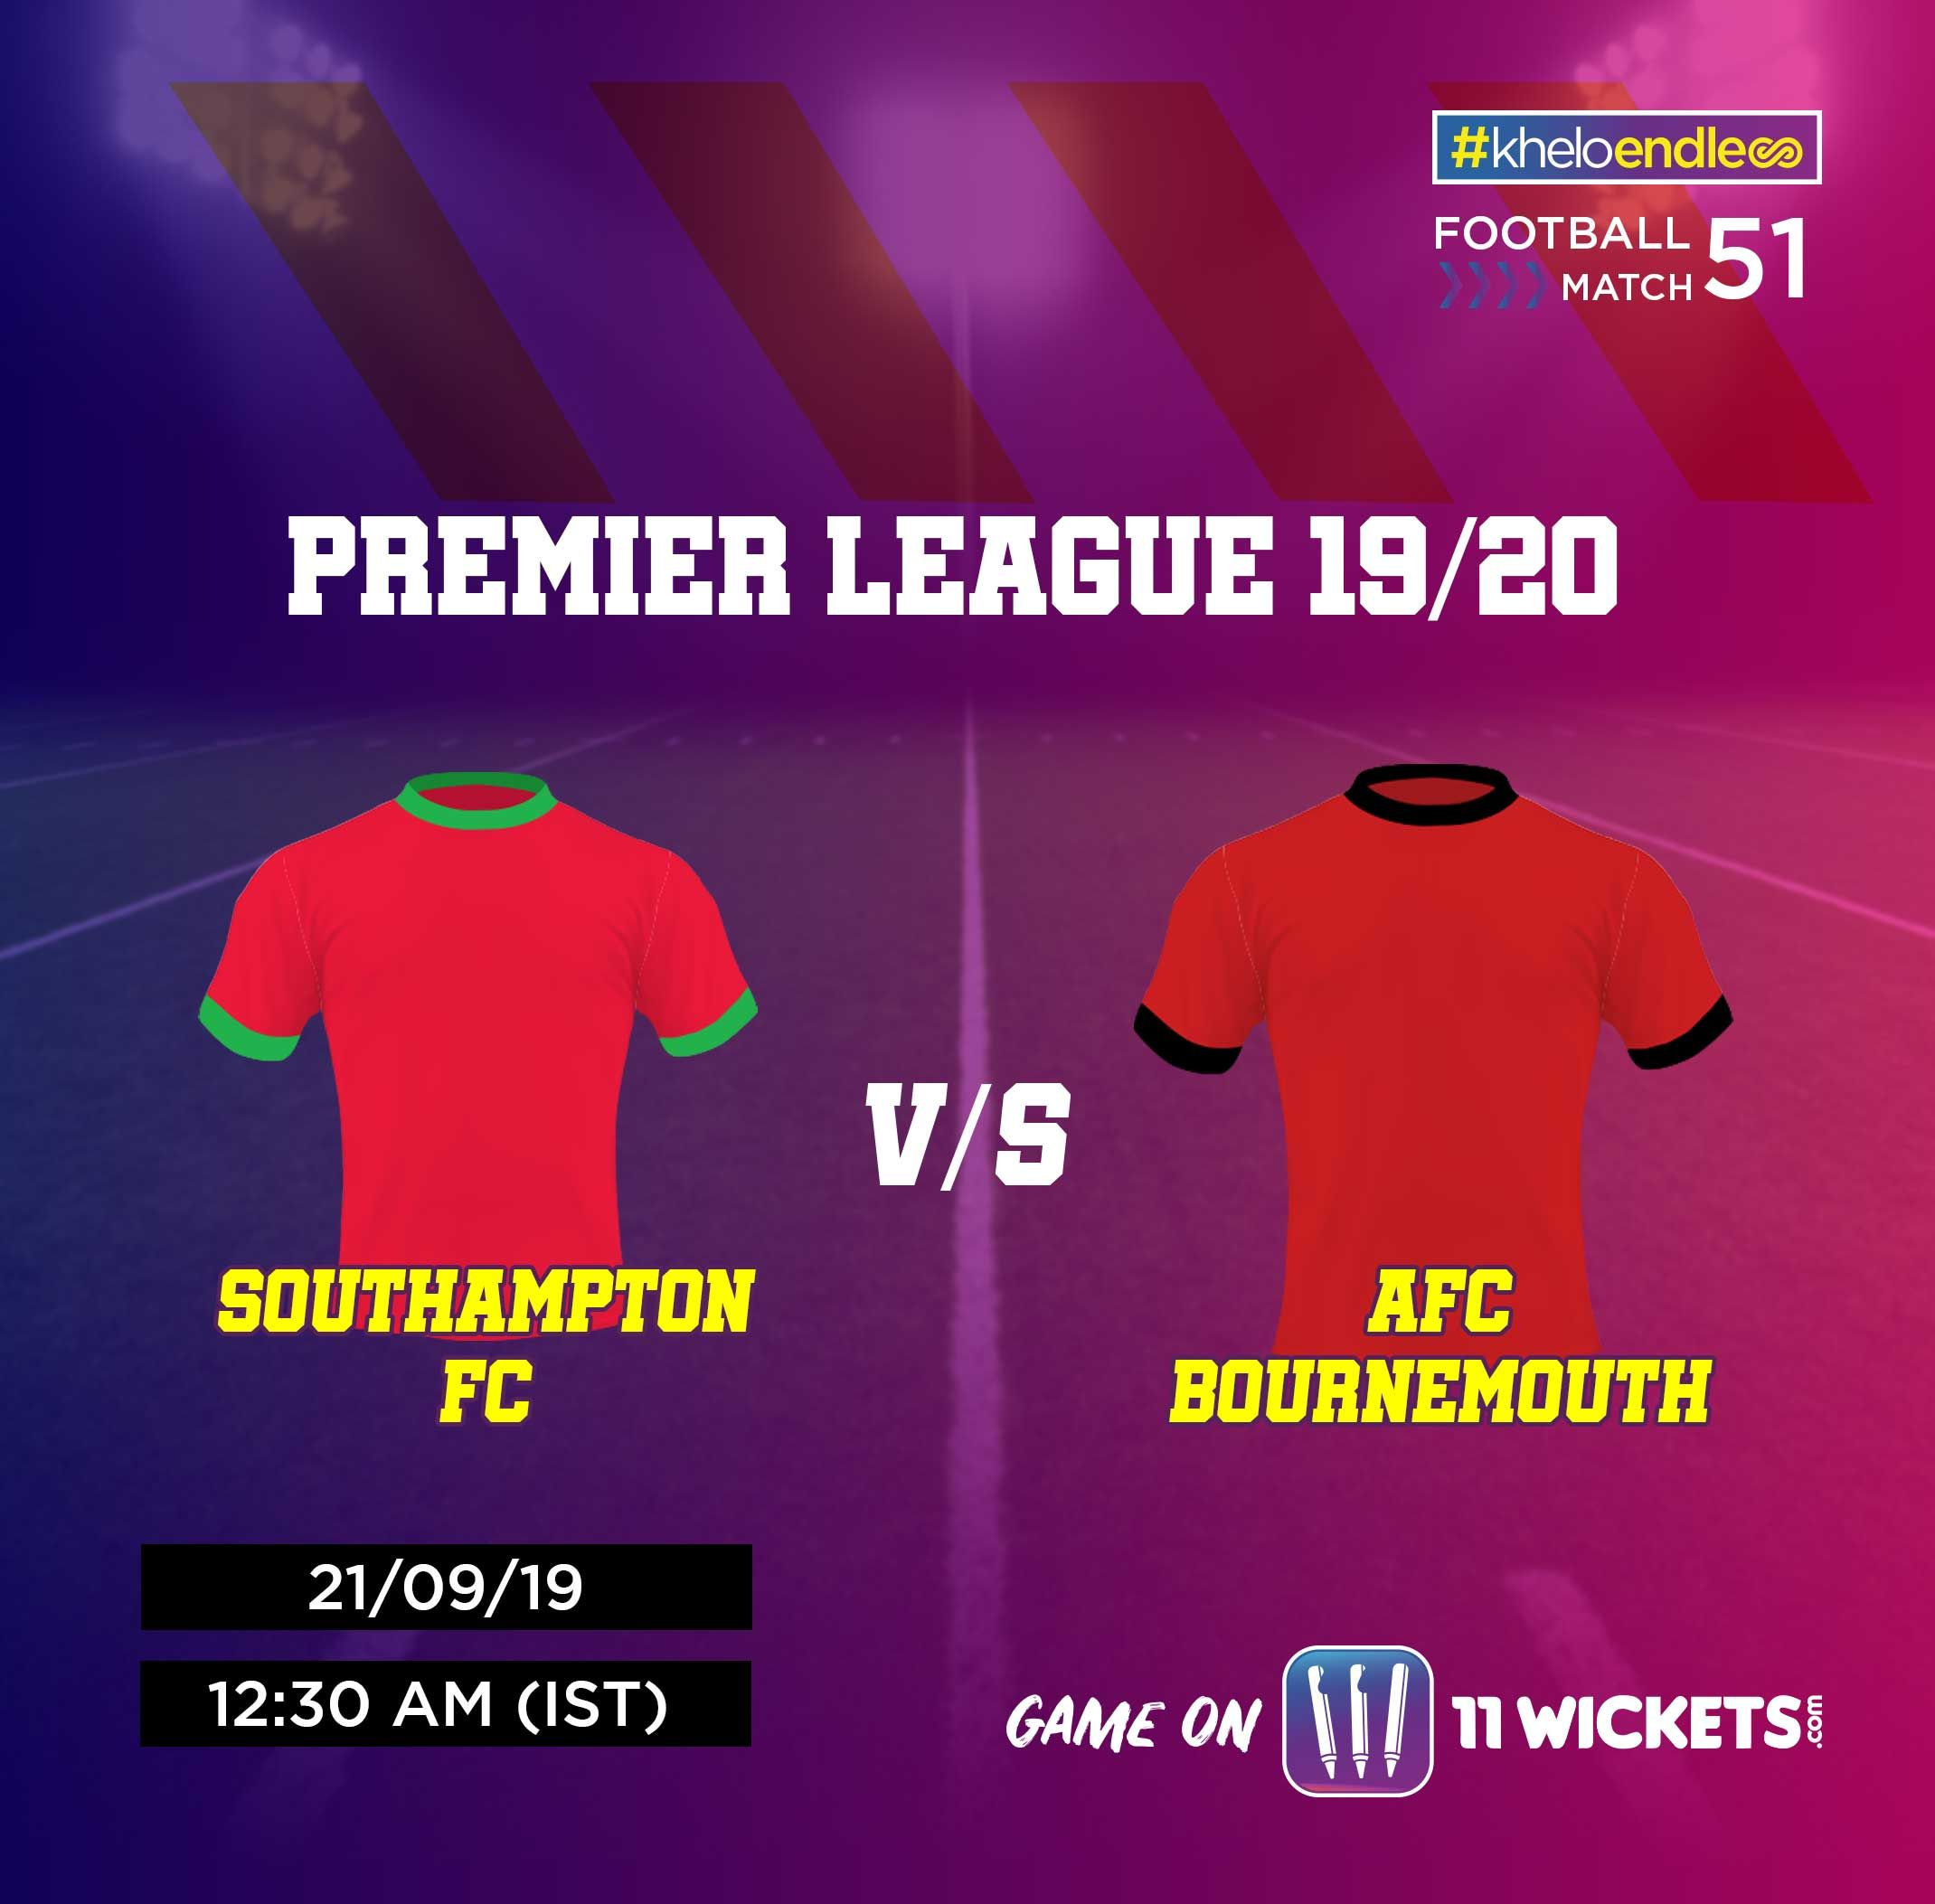 Premier League, 19/20 | Match 51 Get covered with Football fever along with  Join the midnight clash from Premier League 19/20 with your squad now!